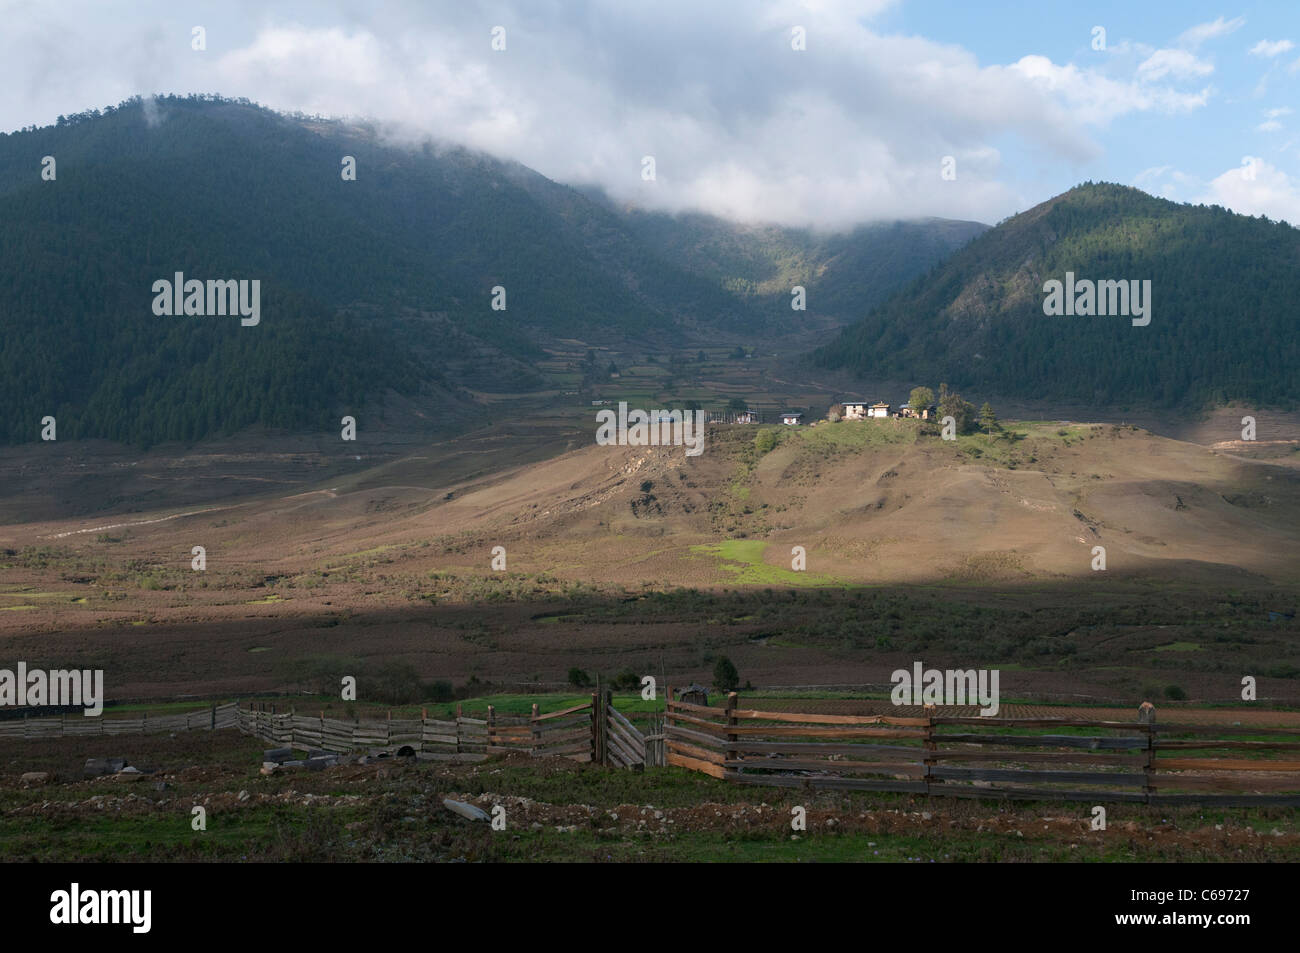 View of the wetlands in Phobjikha valley. bhutan - Stock Image